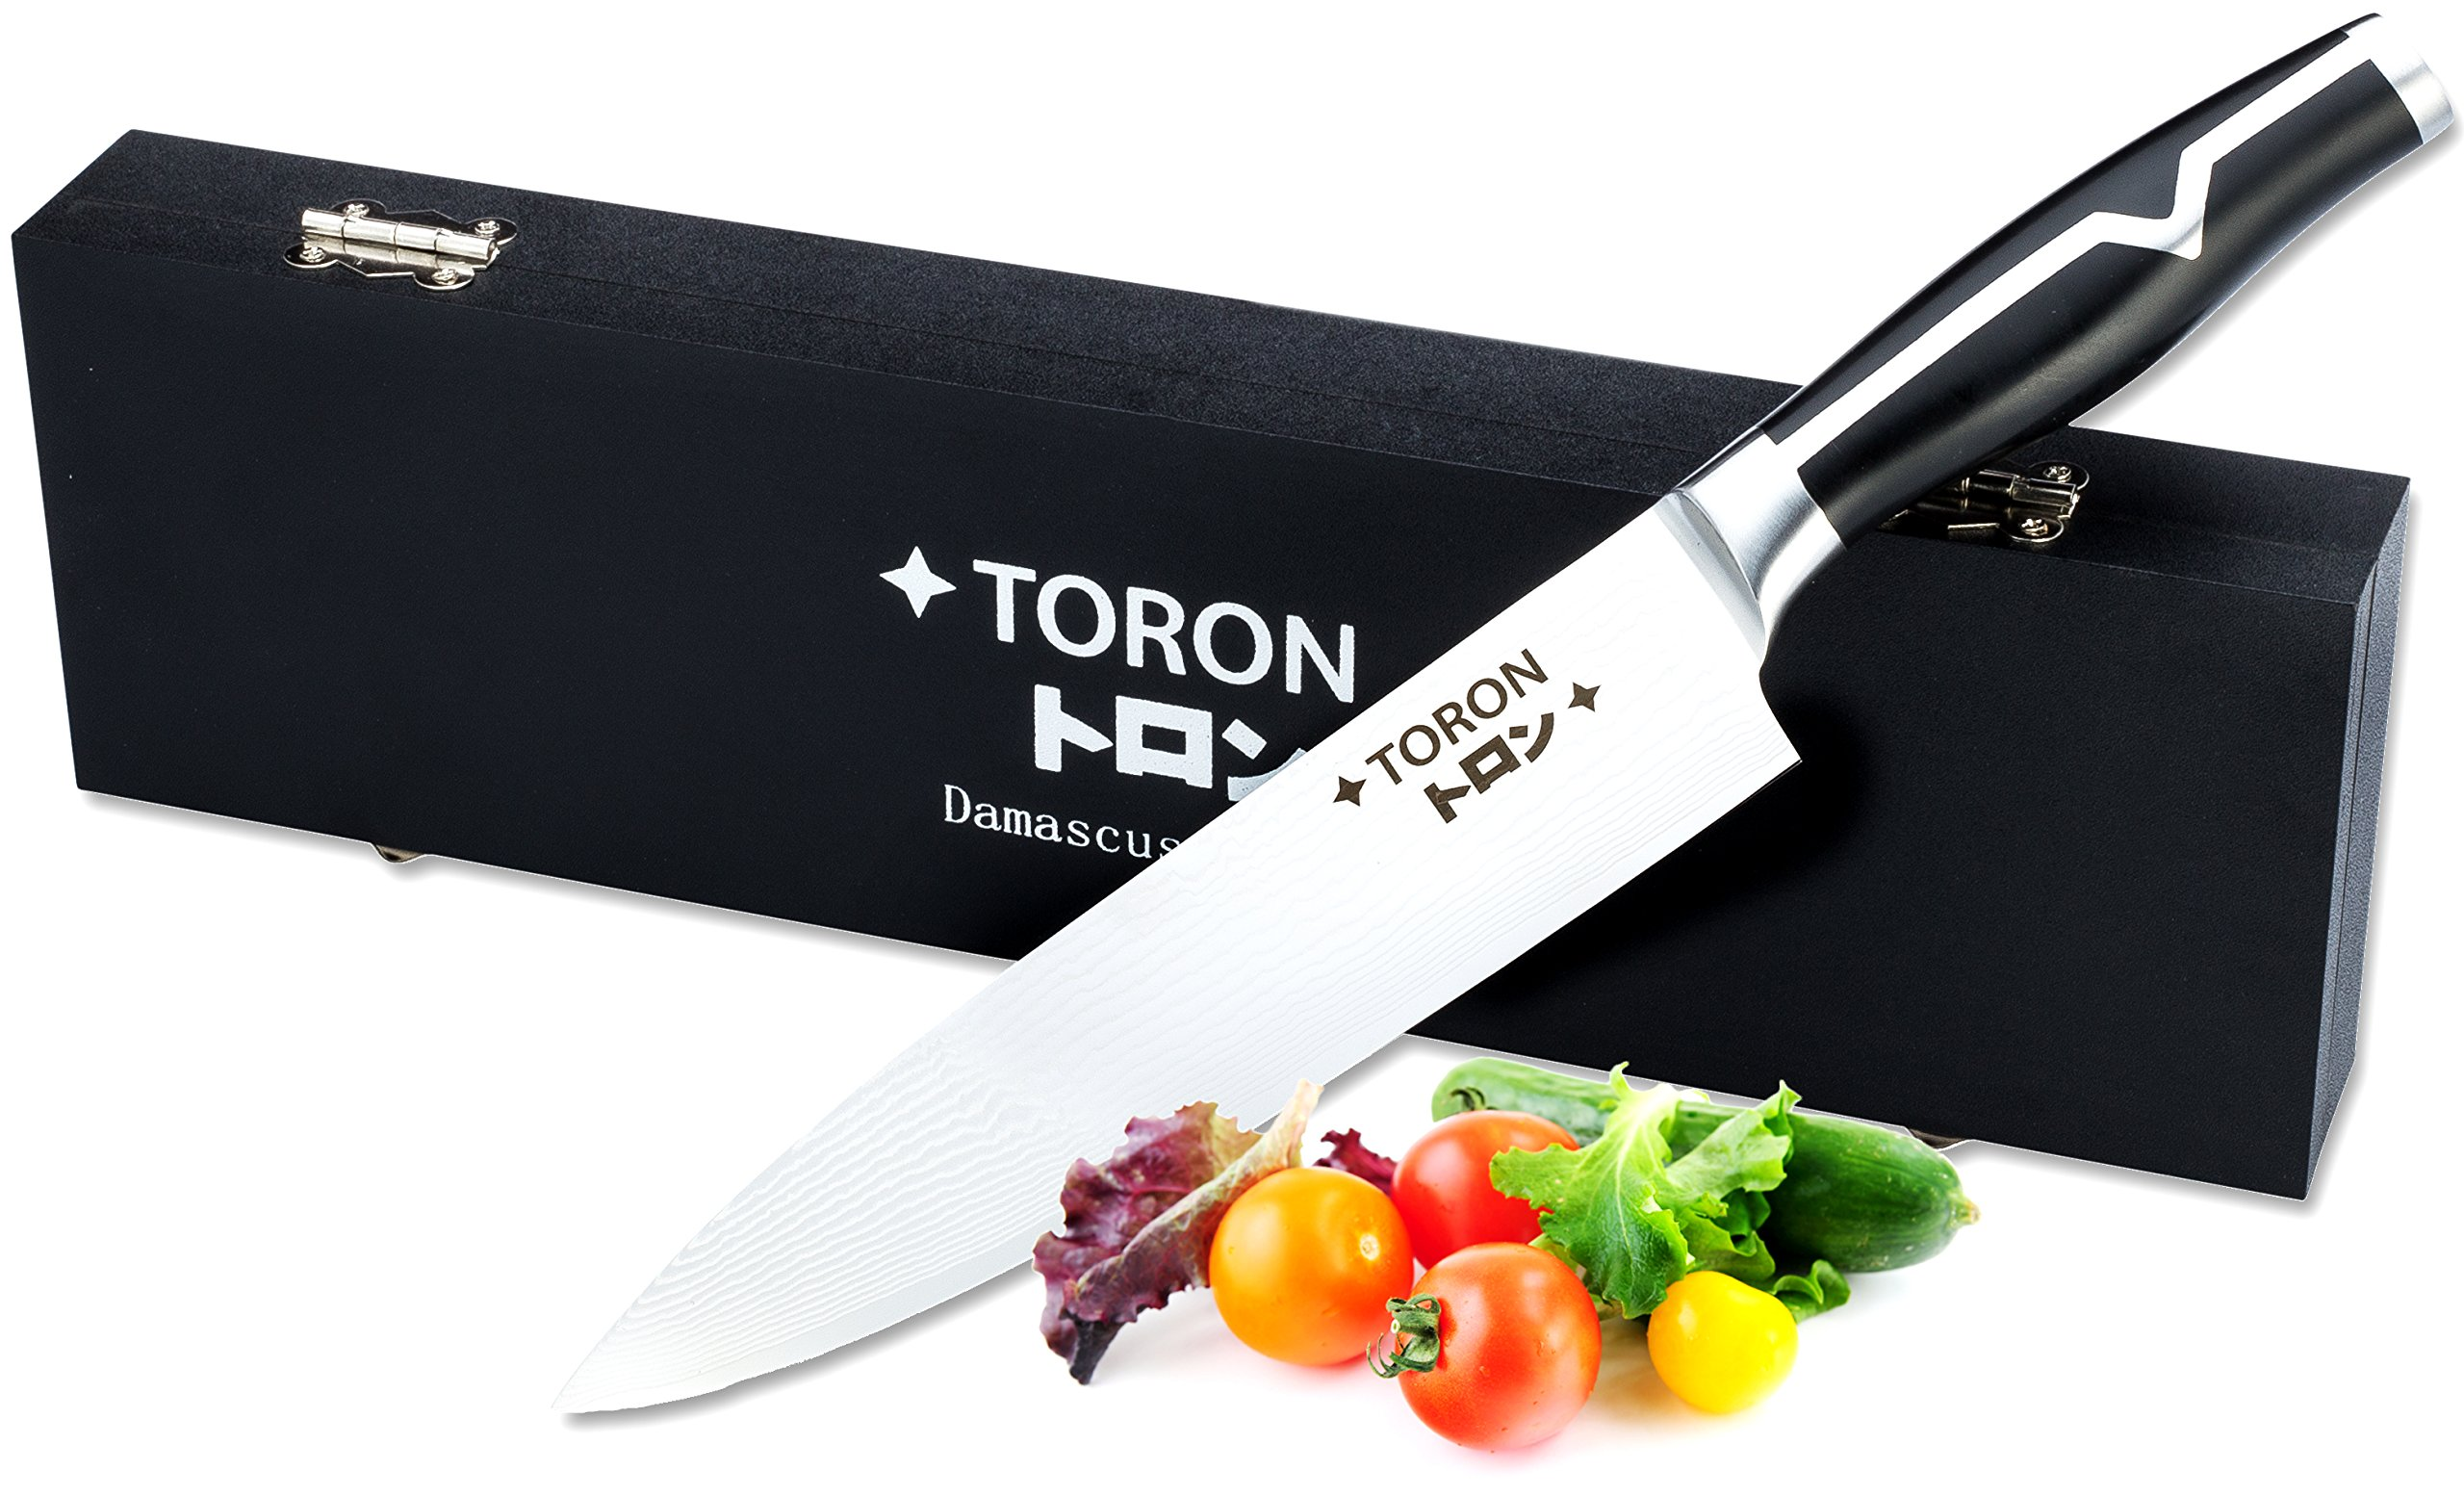 Chef Knife - 8 Inch Knife - VG10 Stainless Steel Blade 67 Layer- Japanese Chef Knife - Razor Sharp Professional Carbon Steel Knife for Chopping - Pork chops, Mincing Knife with Wood Box By Toron